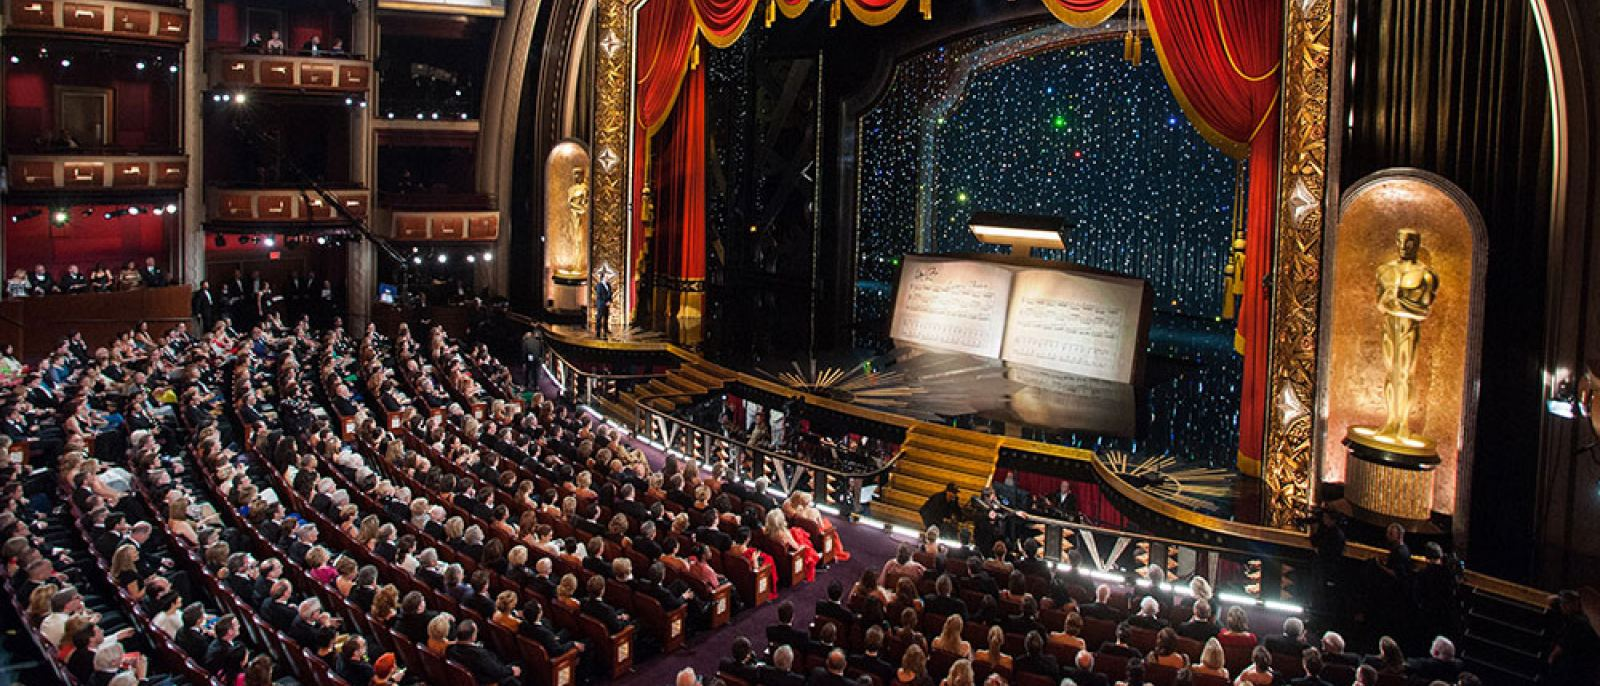 Academy Awards at the Dolby Theatre